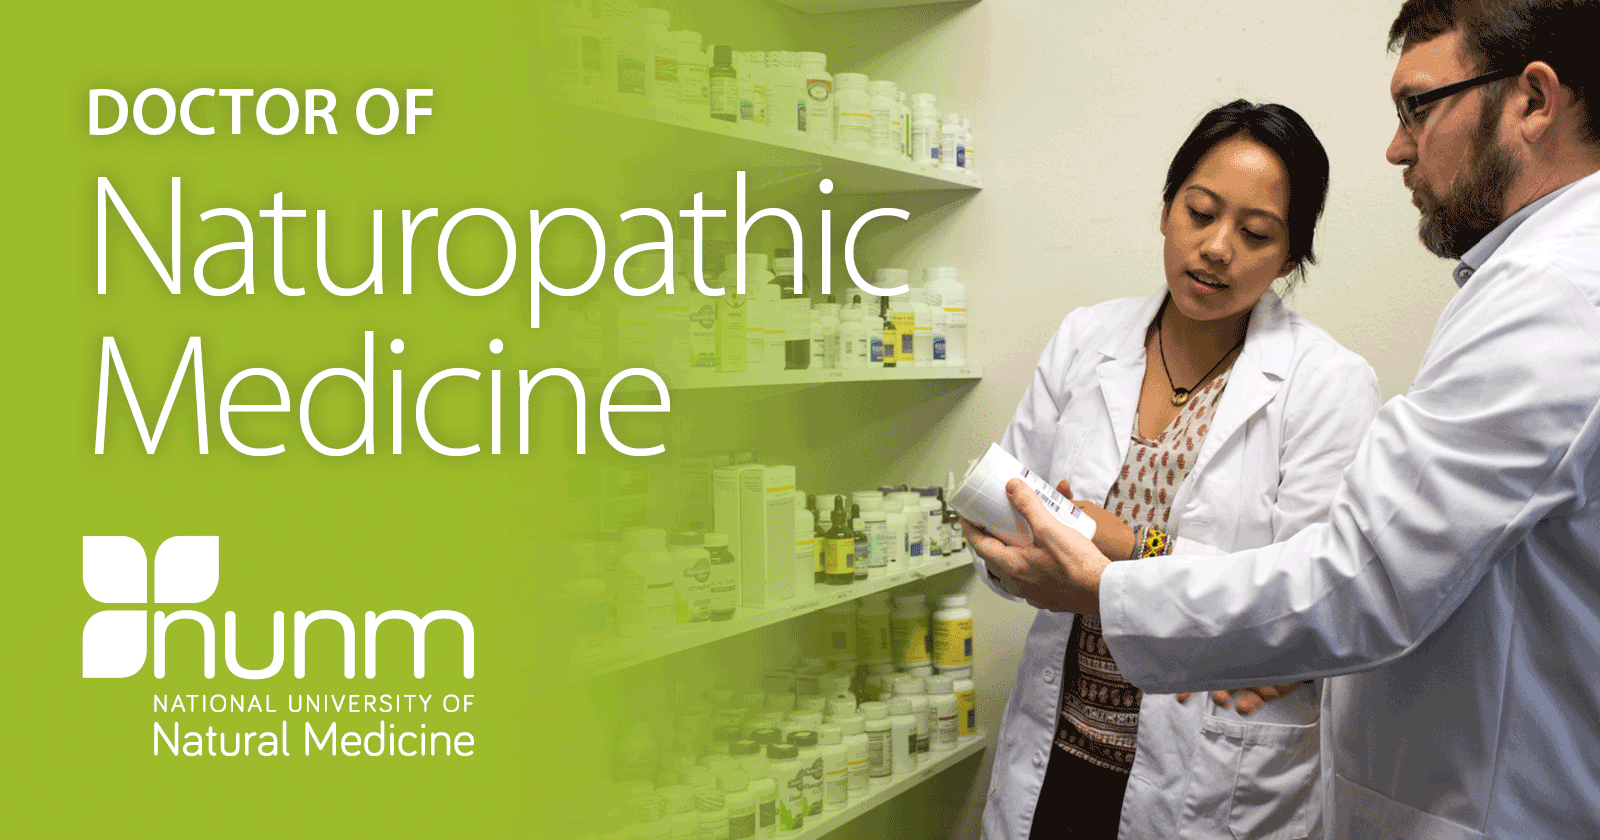 Doctor Of Naturopathic Medicine